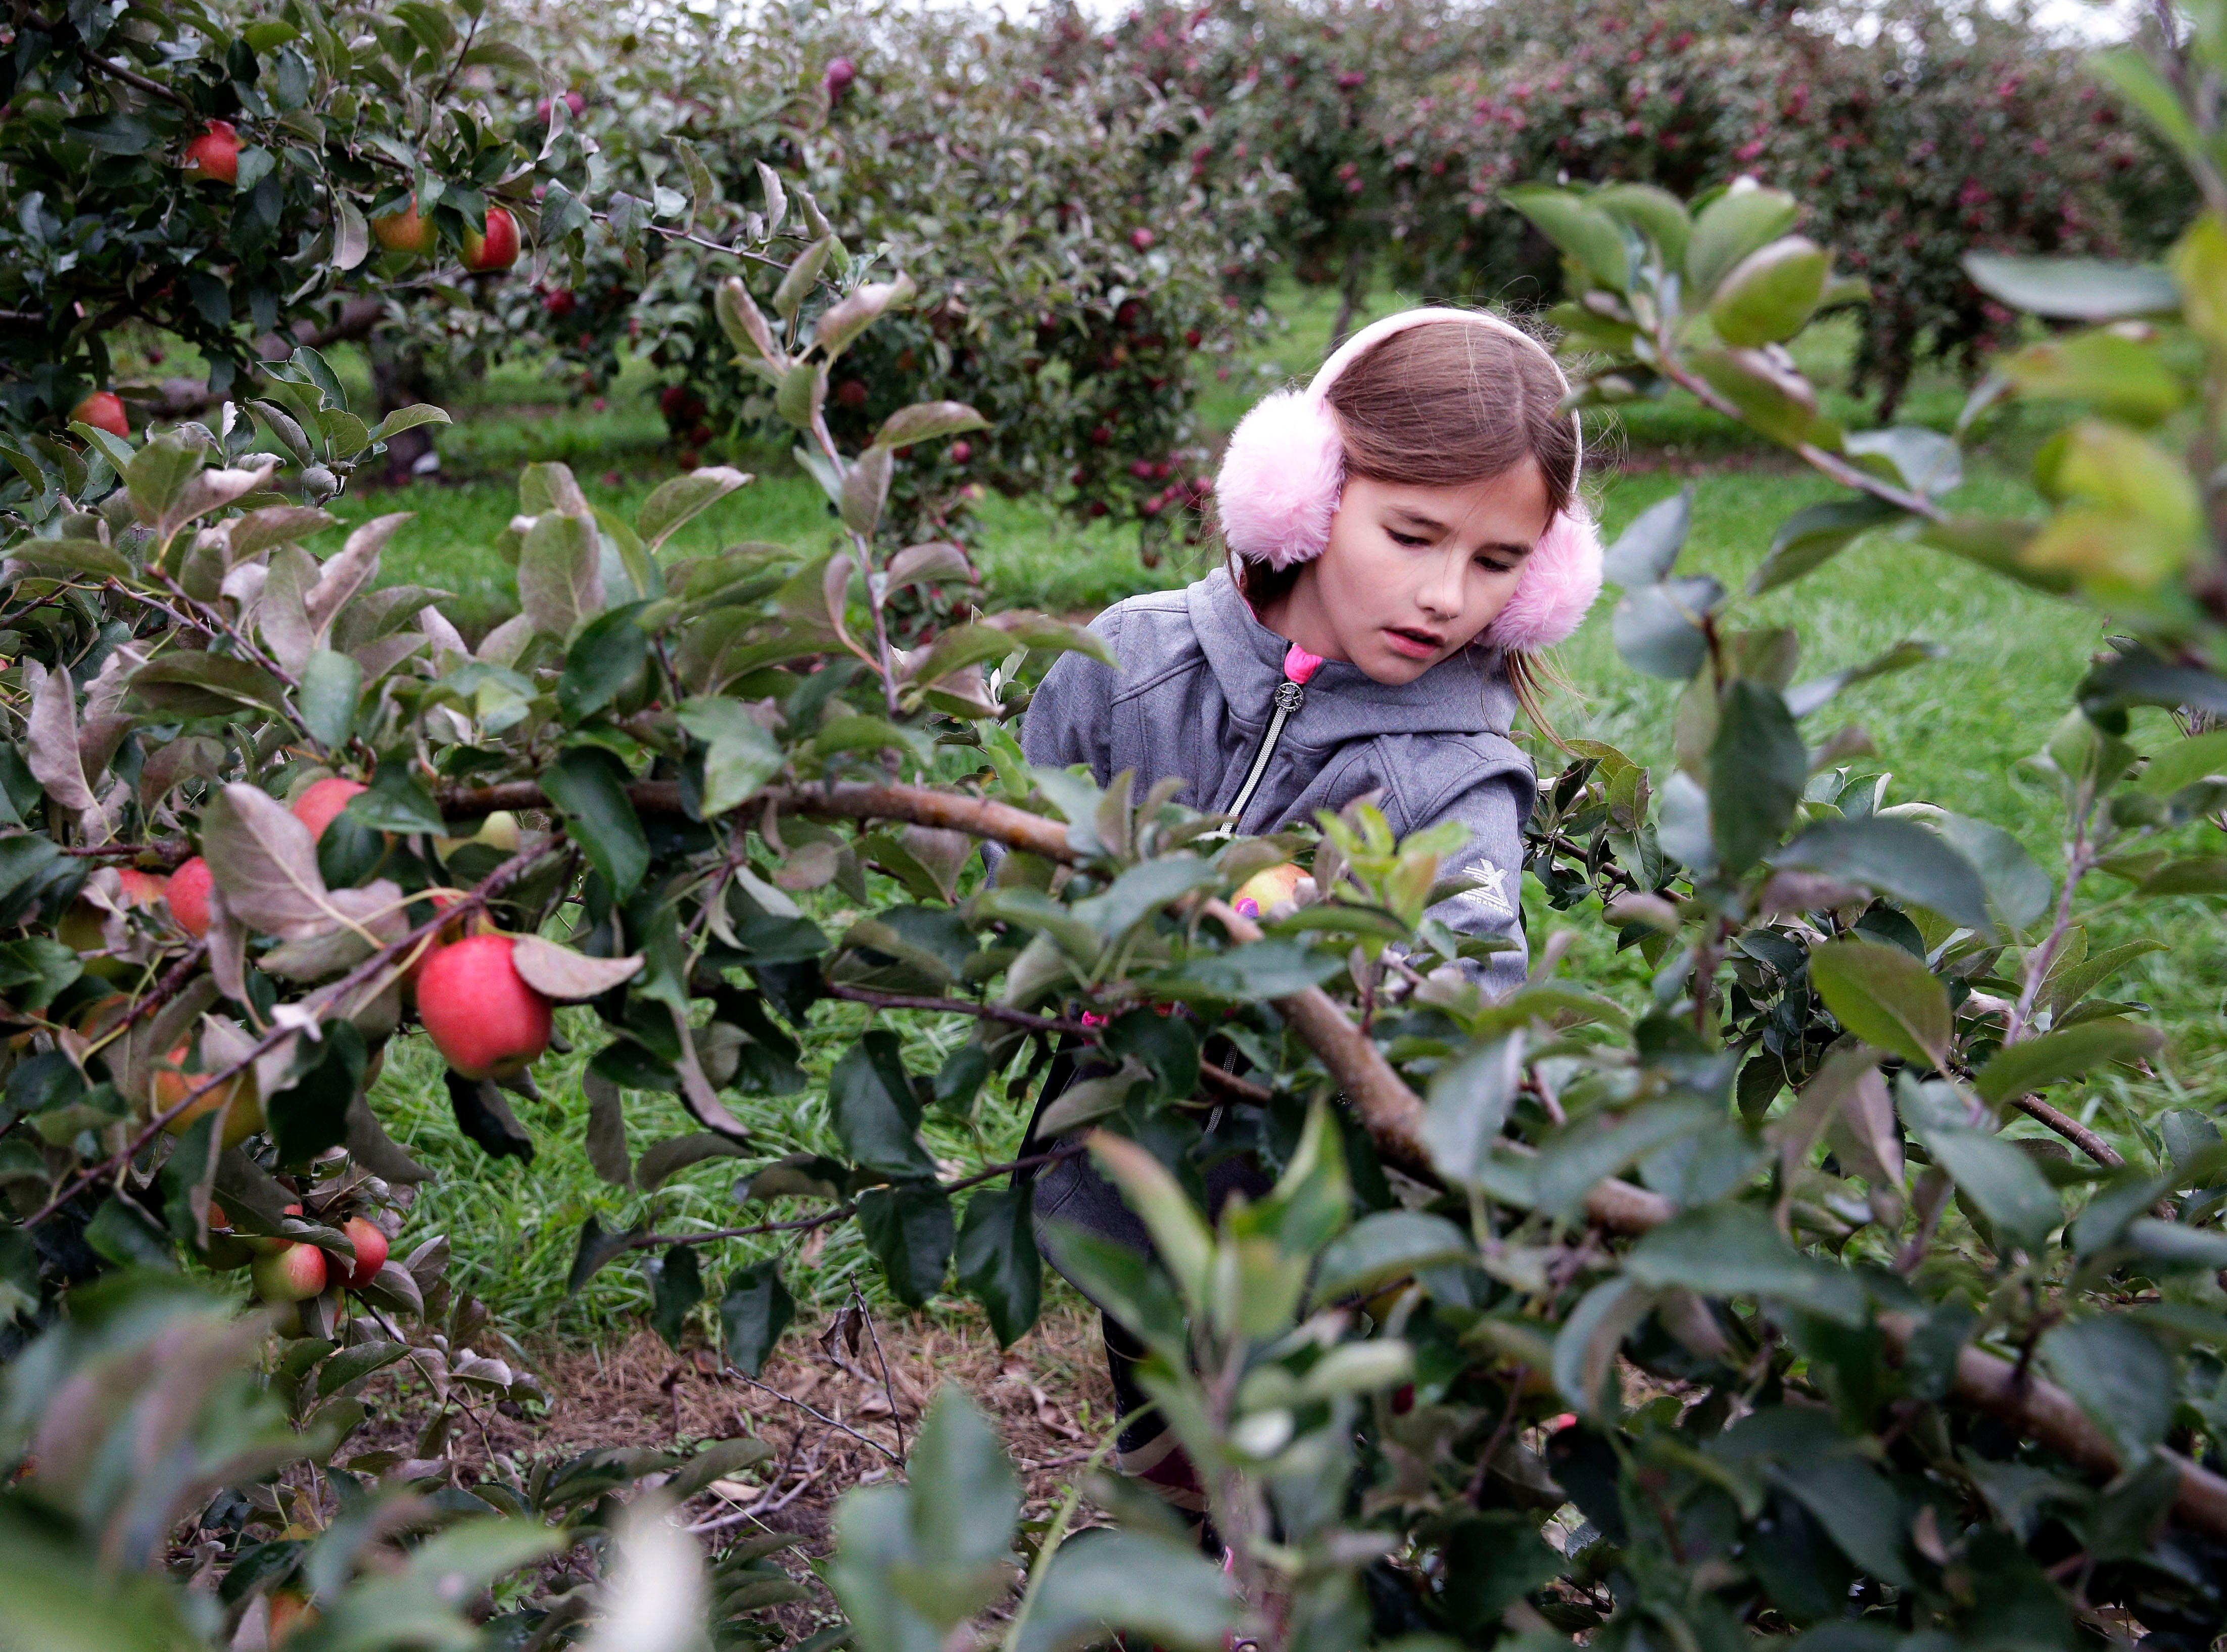 Audrey Hoppe of Little Chute brought earmuffs as she searches for apples on a cool and damp Sunday, September 30, 2018, at Star Orchard in Kaukauna, Wis.Ron Page/USA TODAY NETWORK-Wisconsin